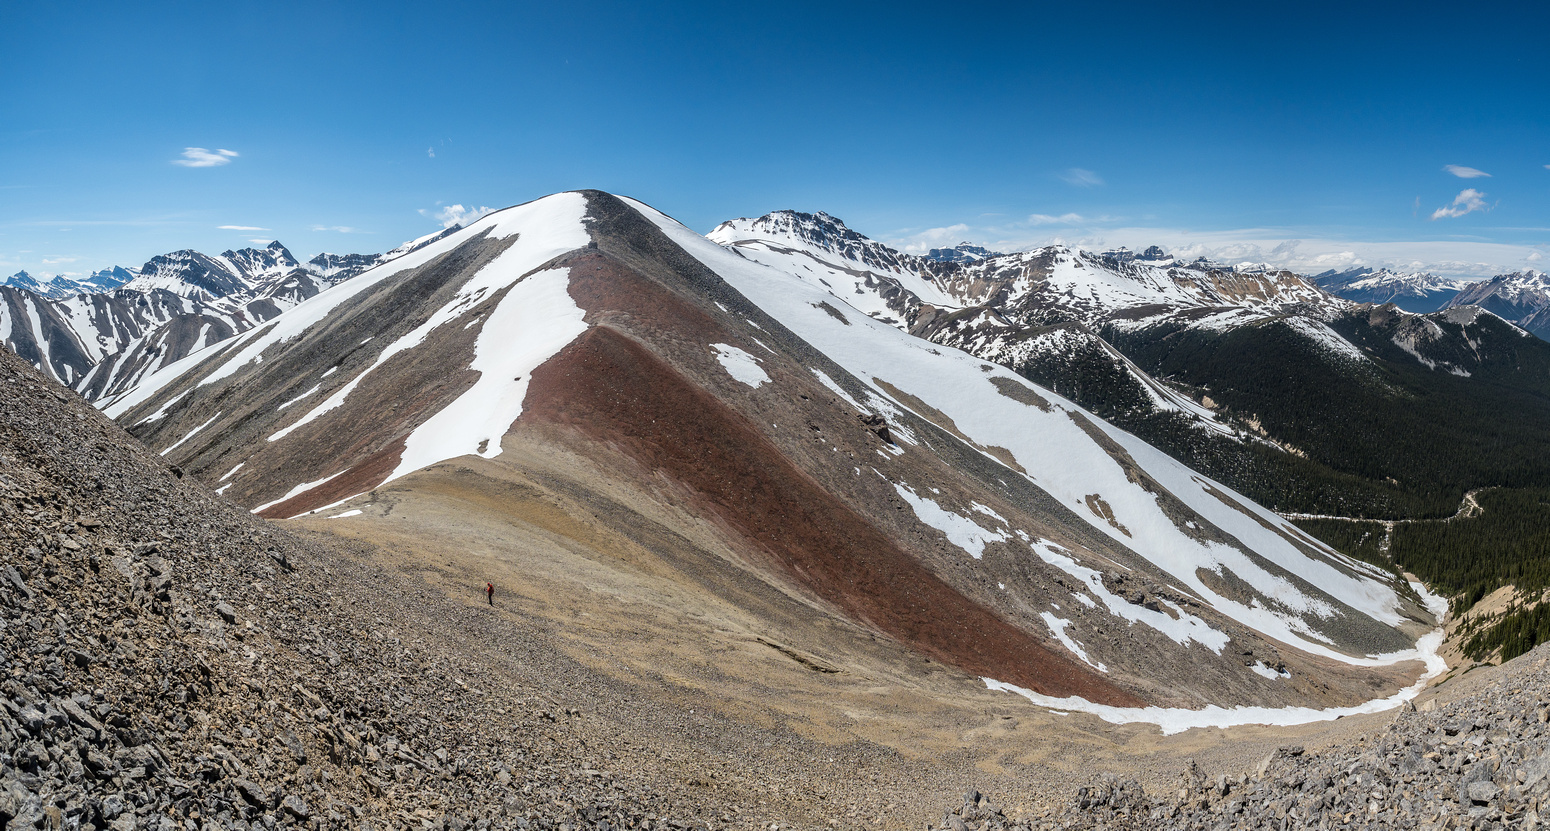 Looking ahead to Landslide Peak - note the intervening colorful hill.